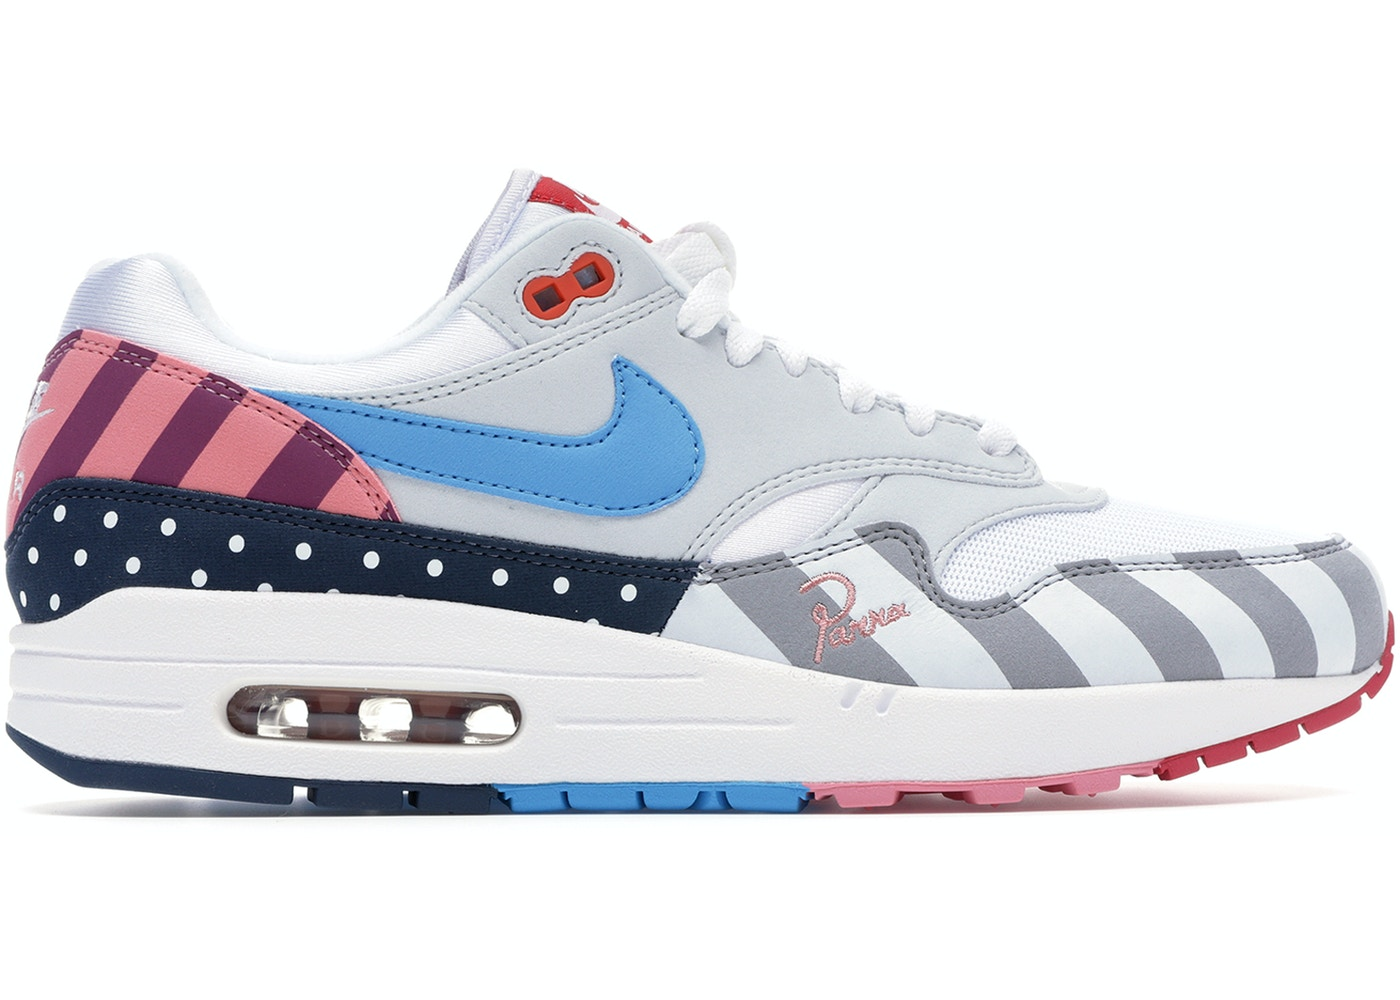 separation shoes 736b5 39a43 Air Max 1 Parra (2018)